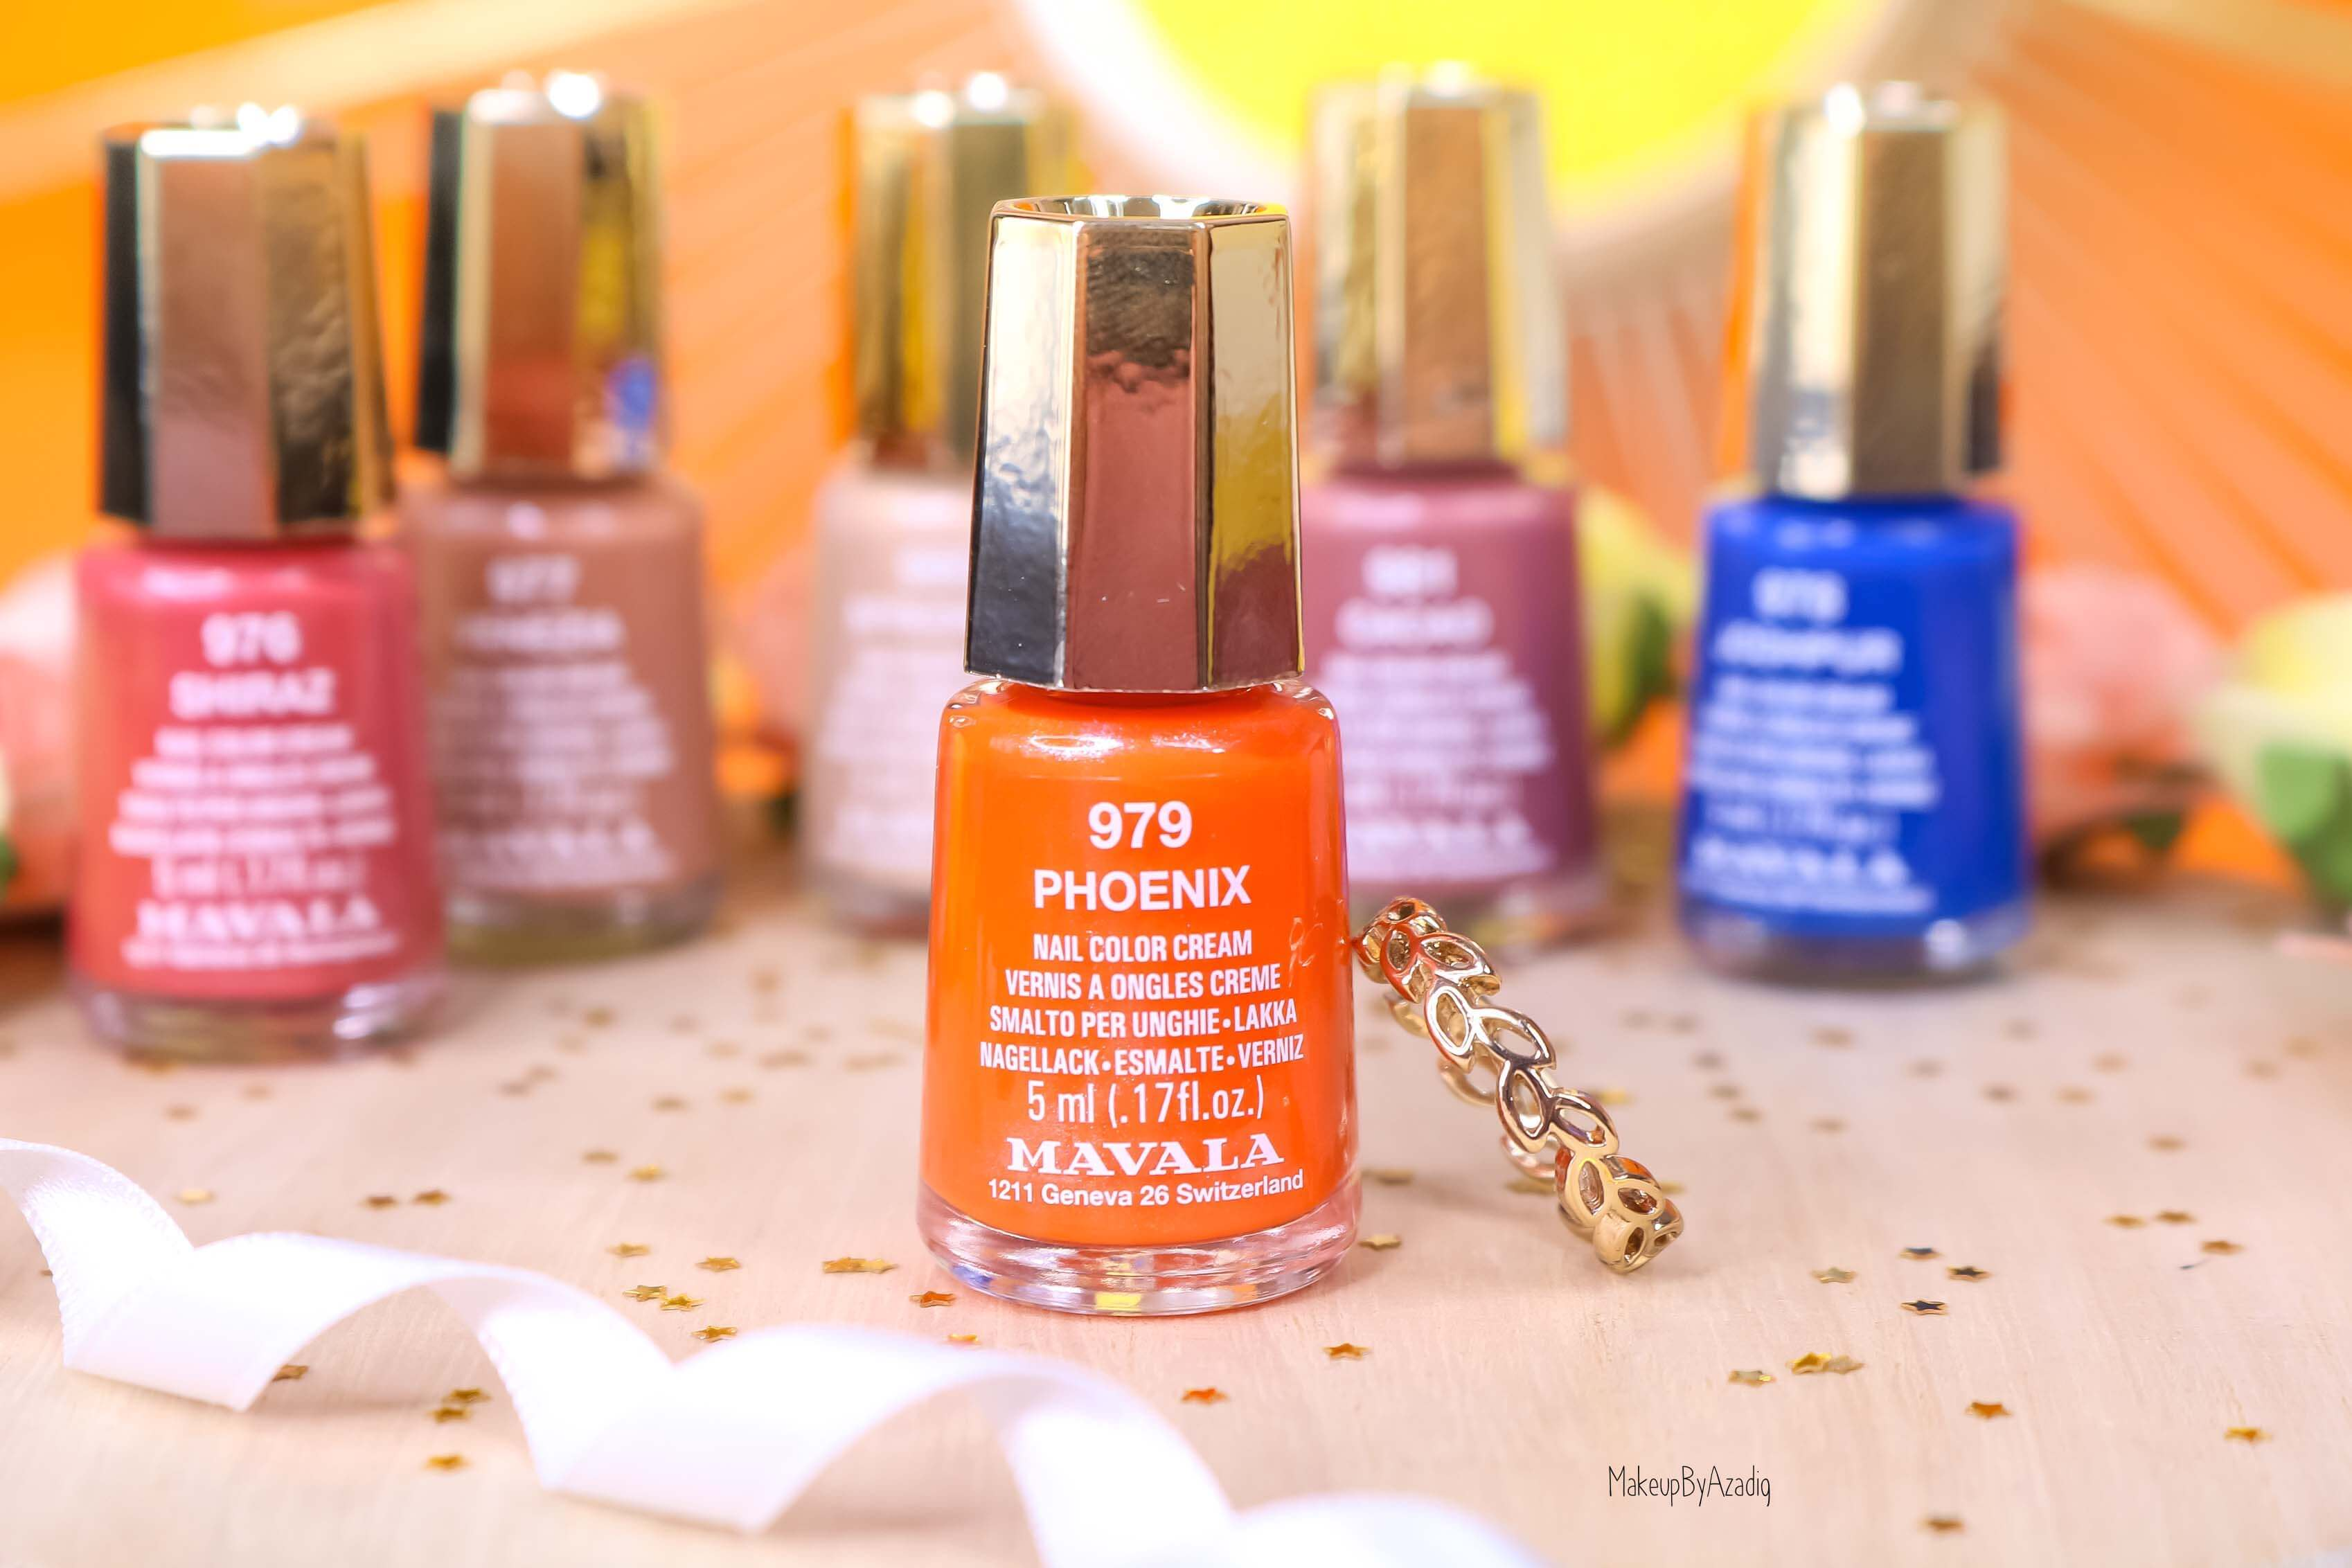 revue-collection-vernis-mavala-nails-solaris-printemps-bleu-orange-makeupbyazadig-swatch-avis-prix-phoenix